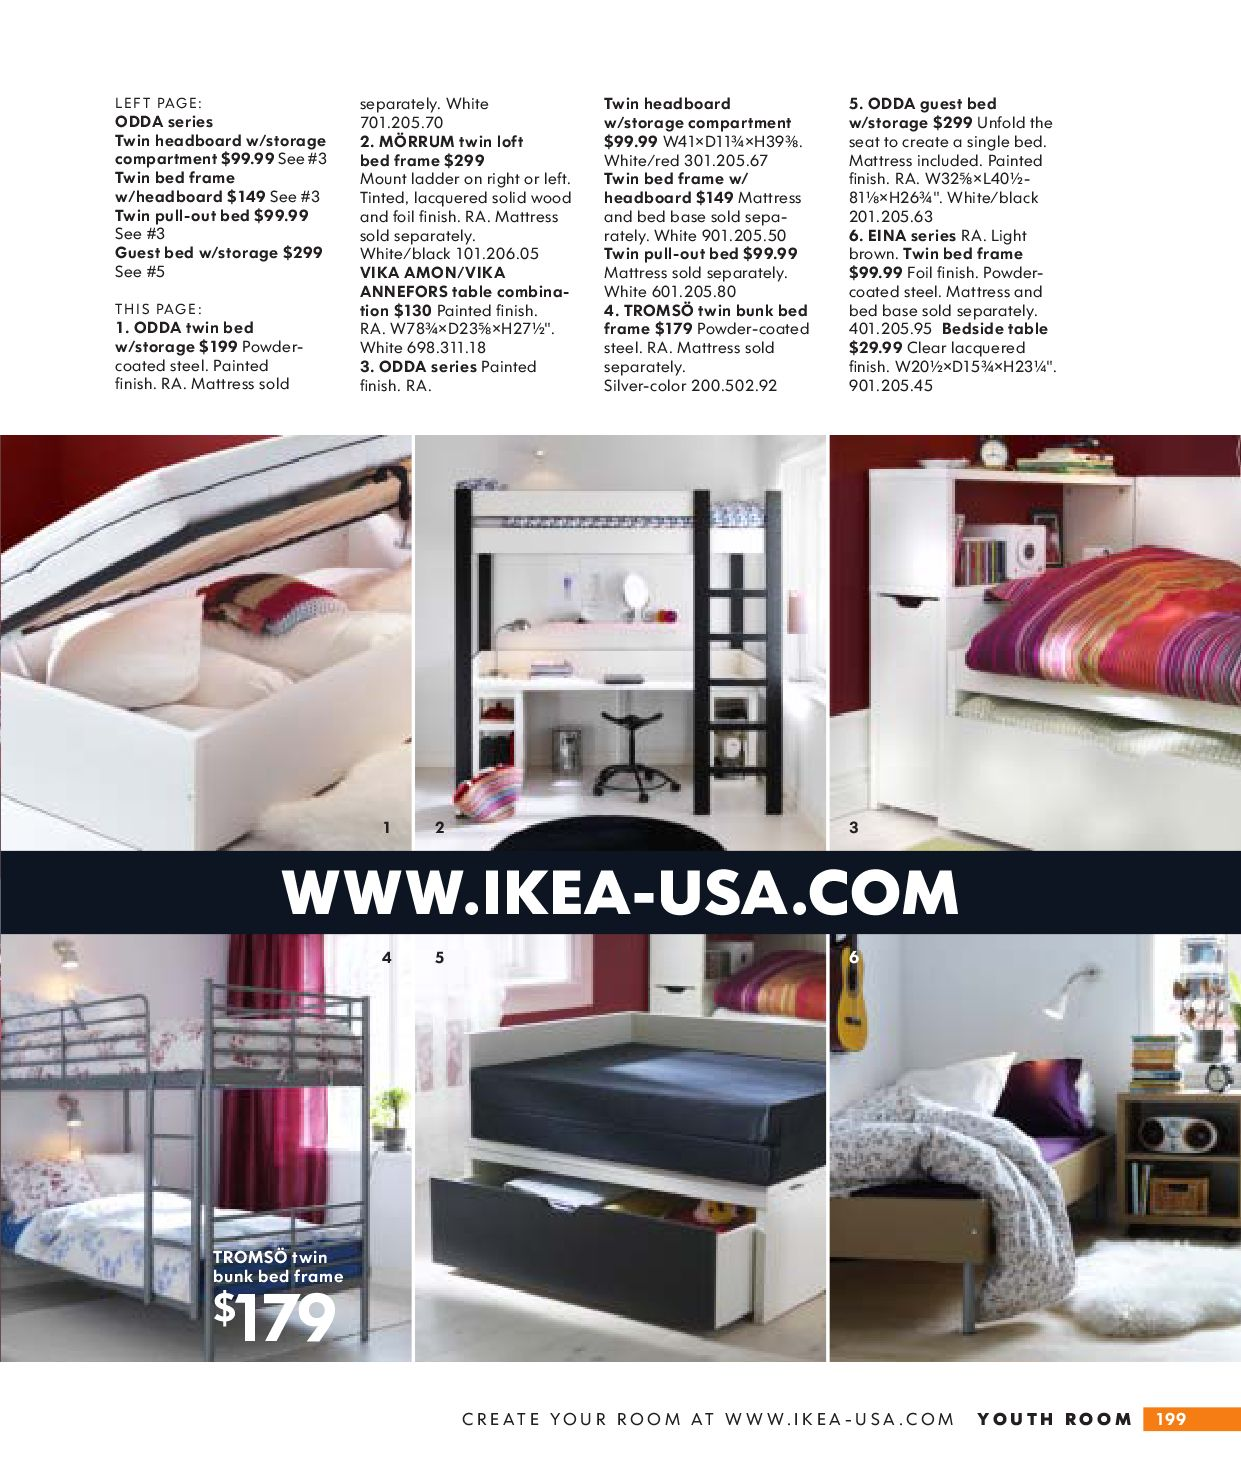 Ikea 2009 Catalogue By Muhammad Mansour Issuu